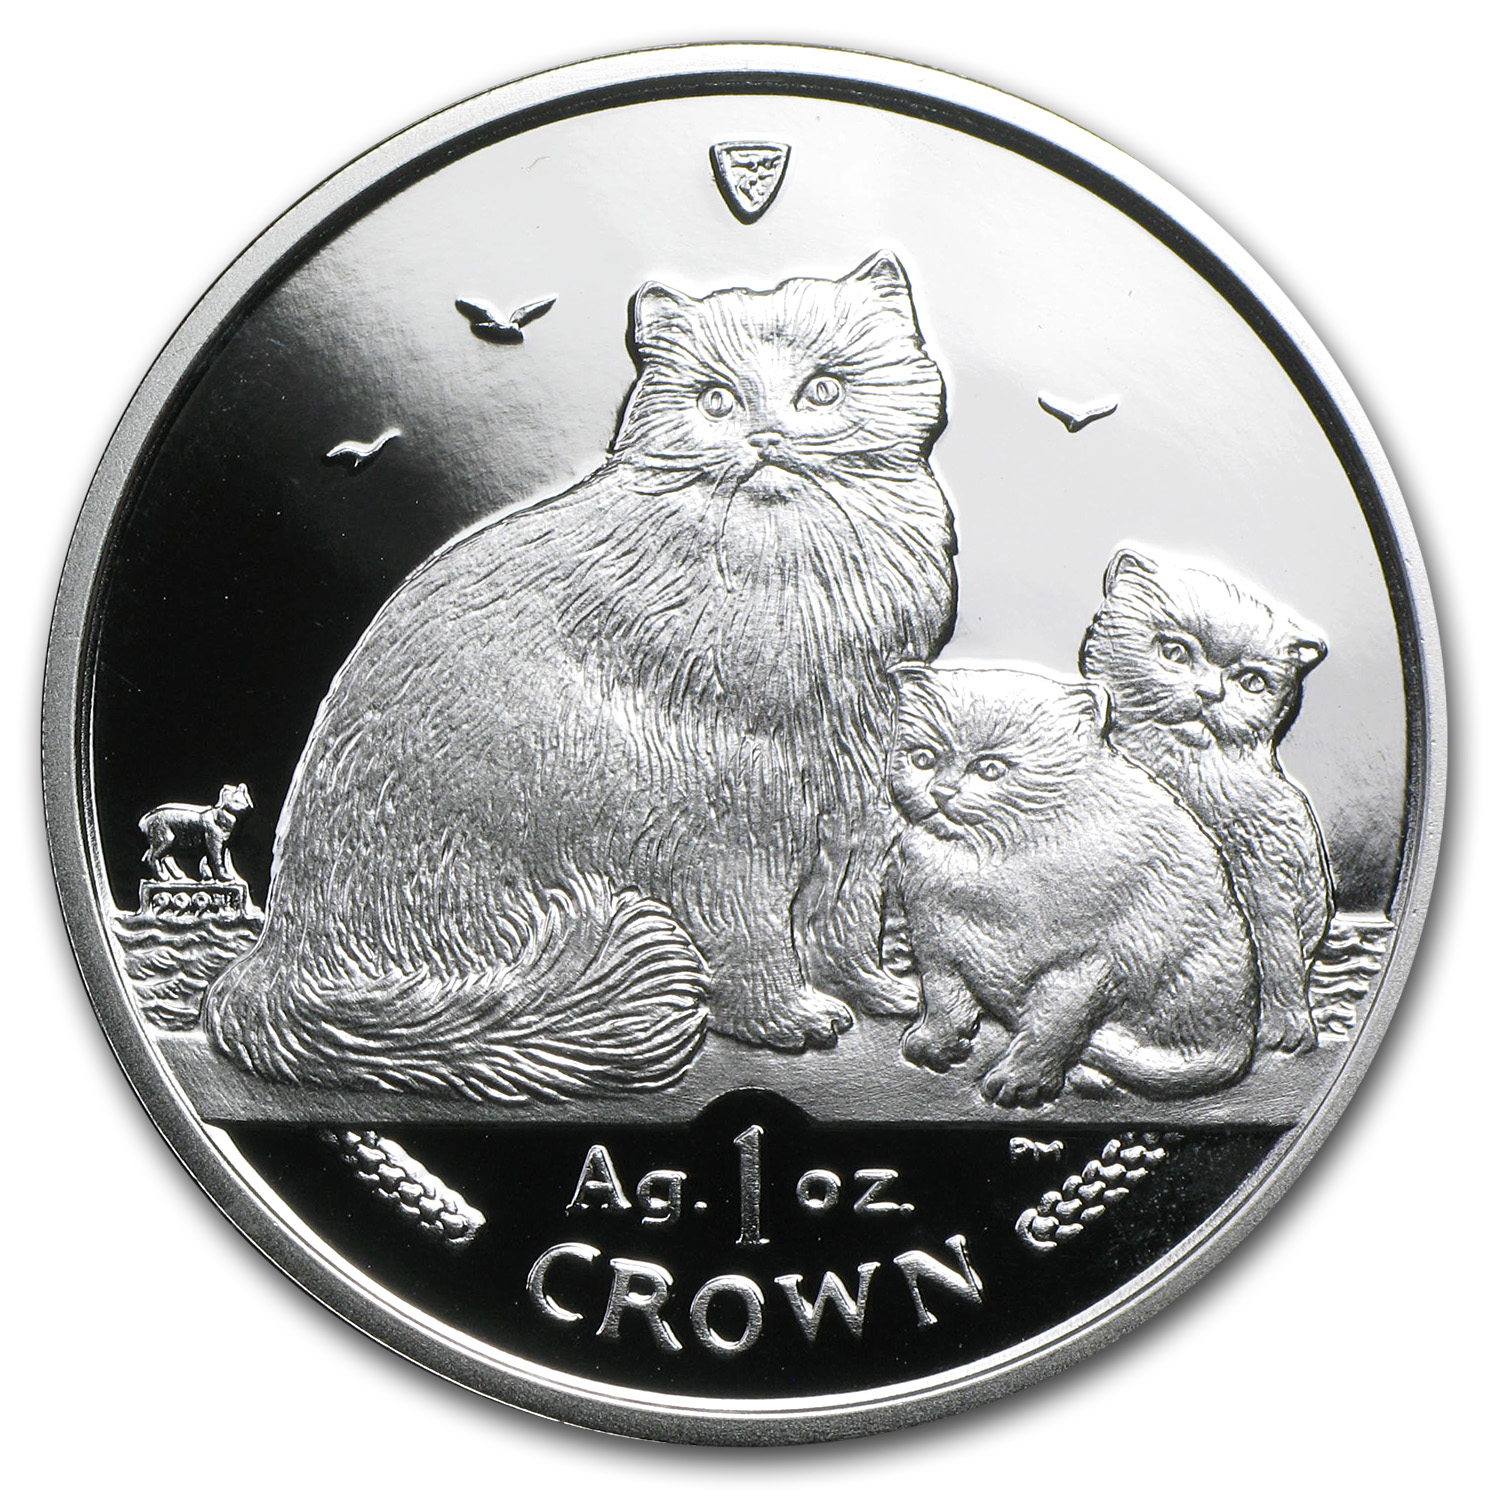 2007 Isle of Man 1 oz Silver Ragdoll Cats Proof